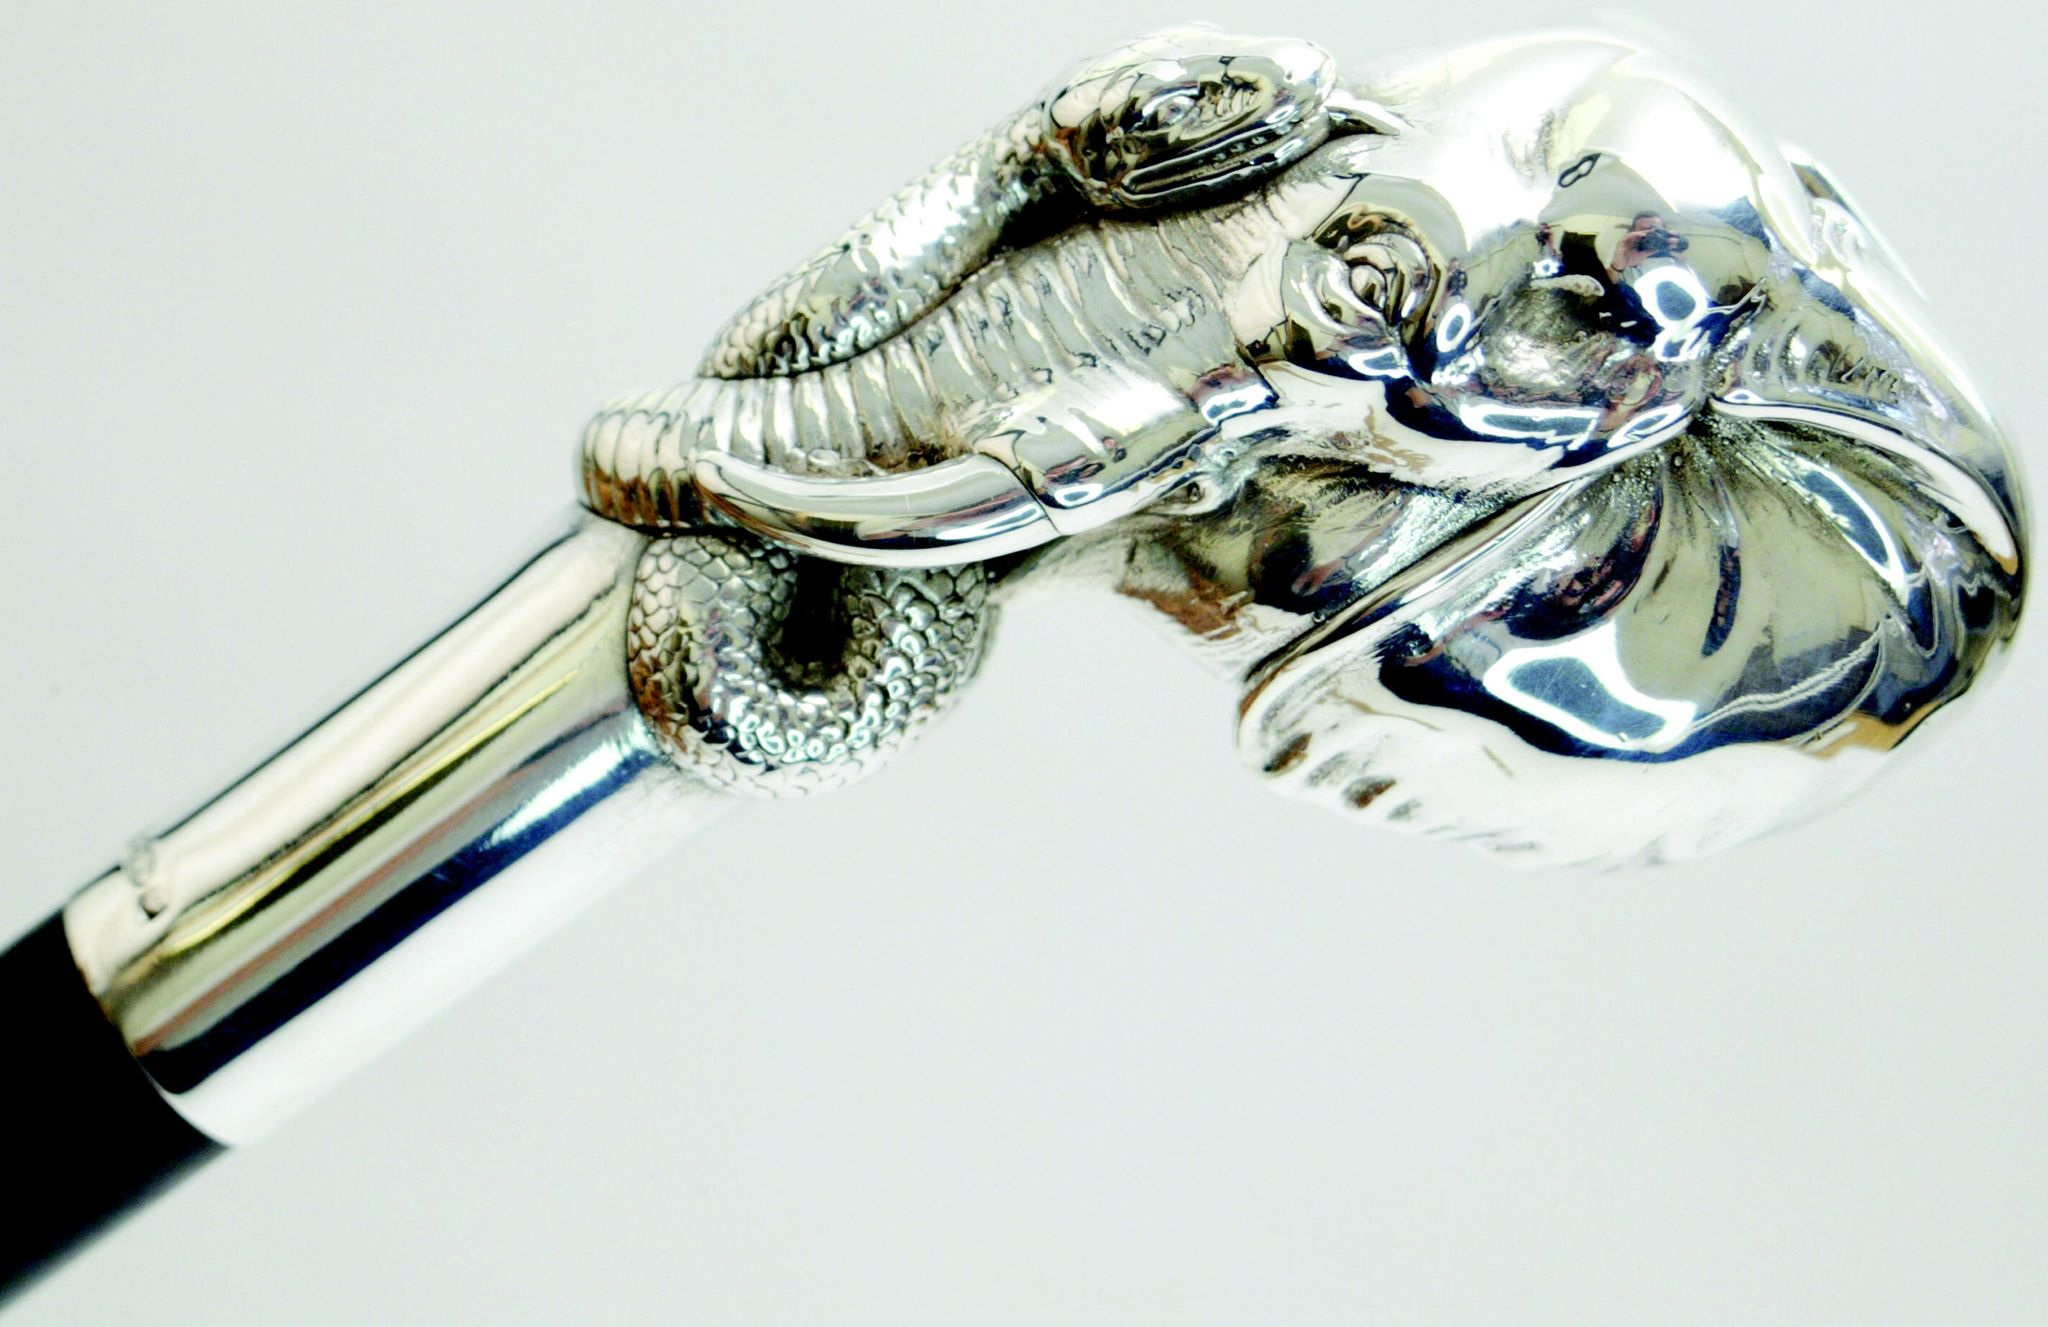 STERLING SILVER ELEPHANT AND SNAKE DRESS CANE BY SWAINE ADENEY BRIGG LTD